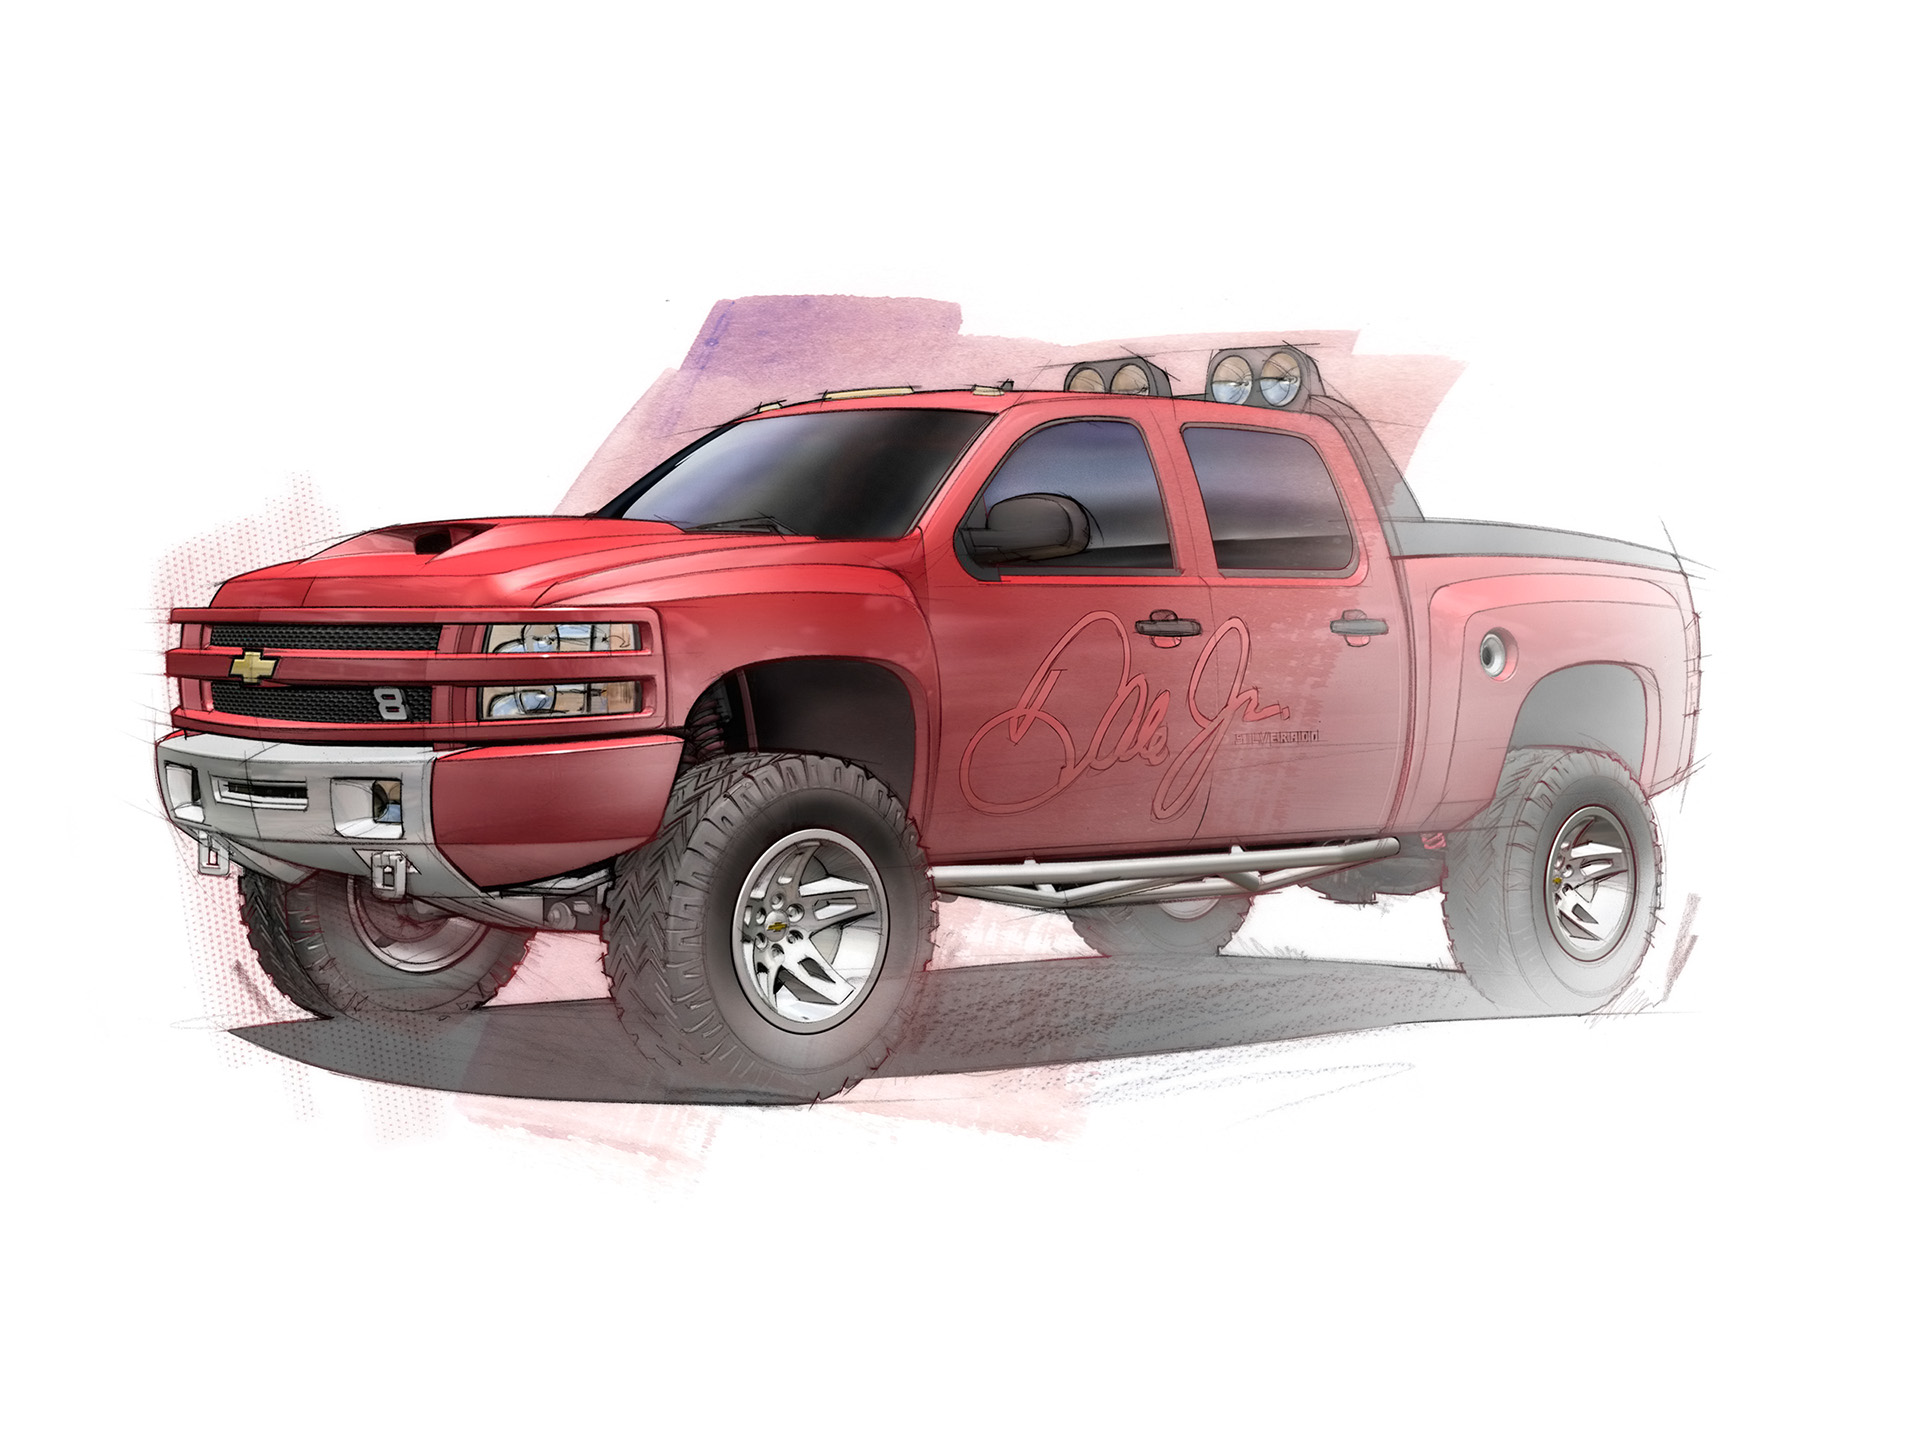 1920x1440 2007 Dale Earnhardt Jr Big Red Chevrolet Silverado Concept